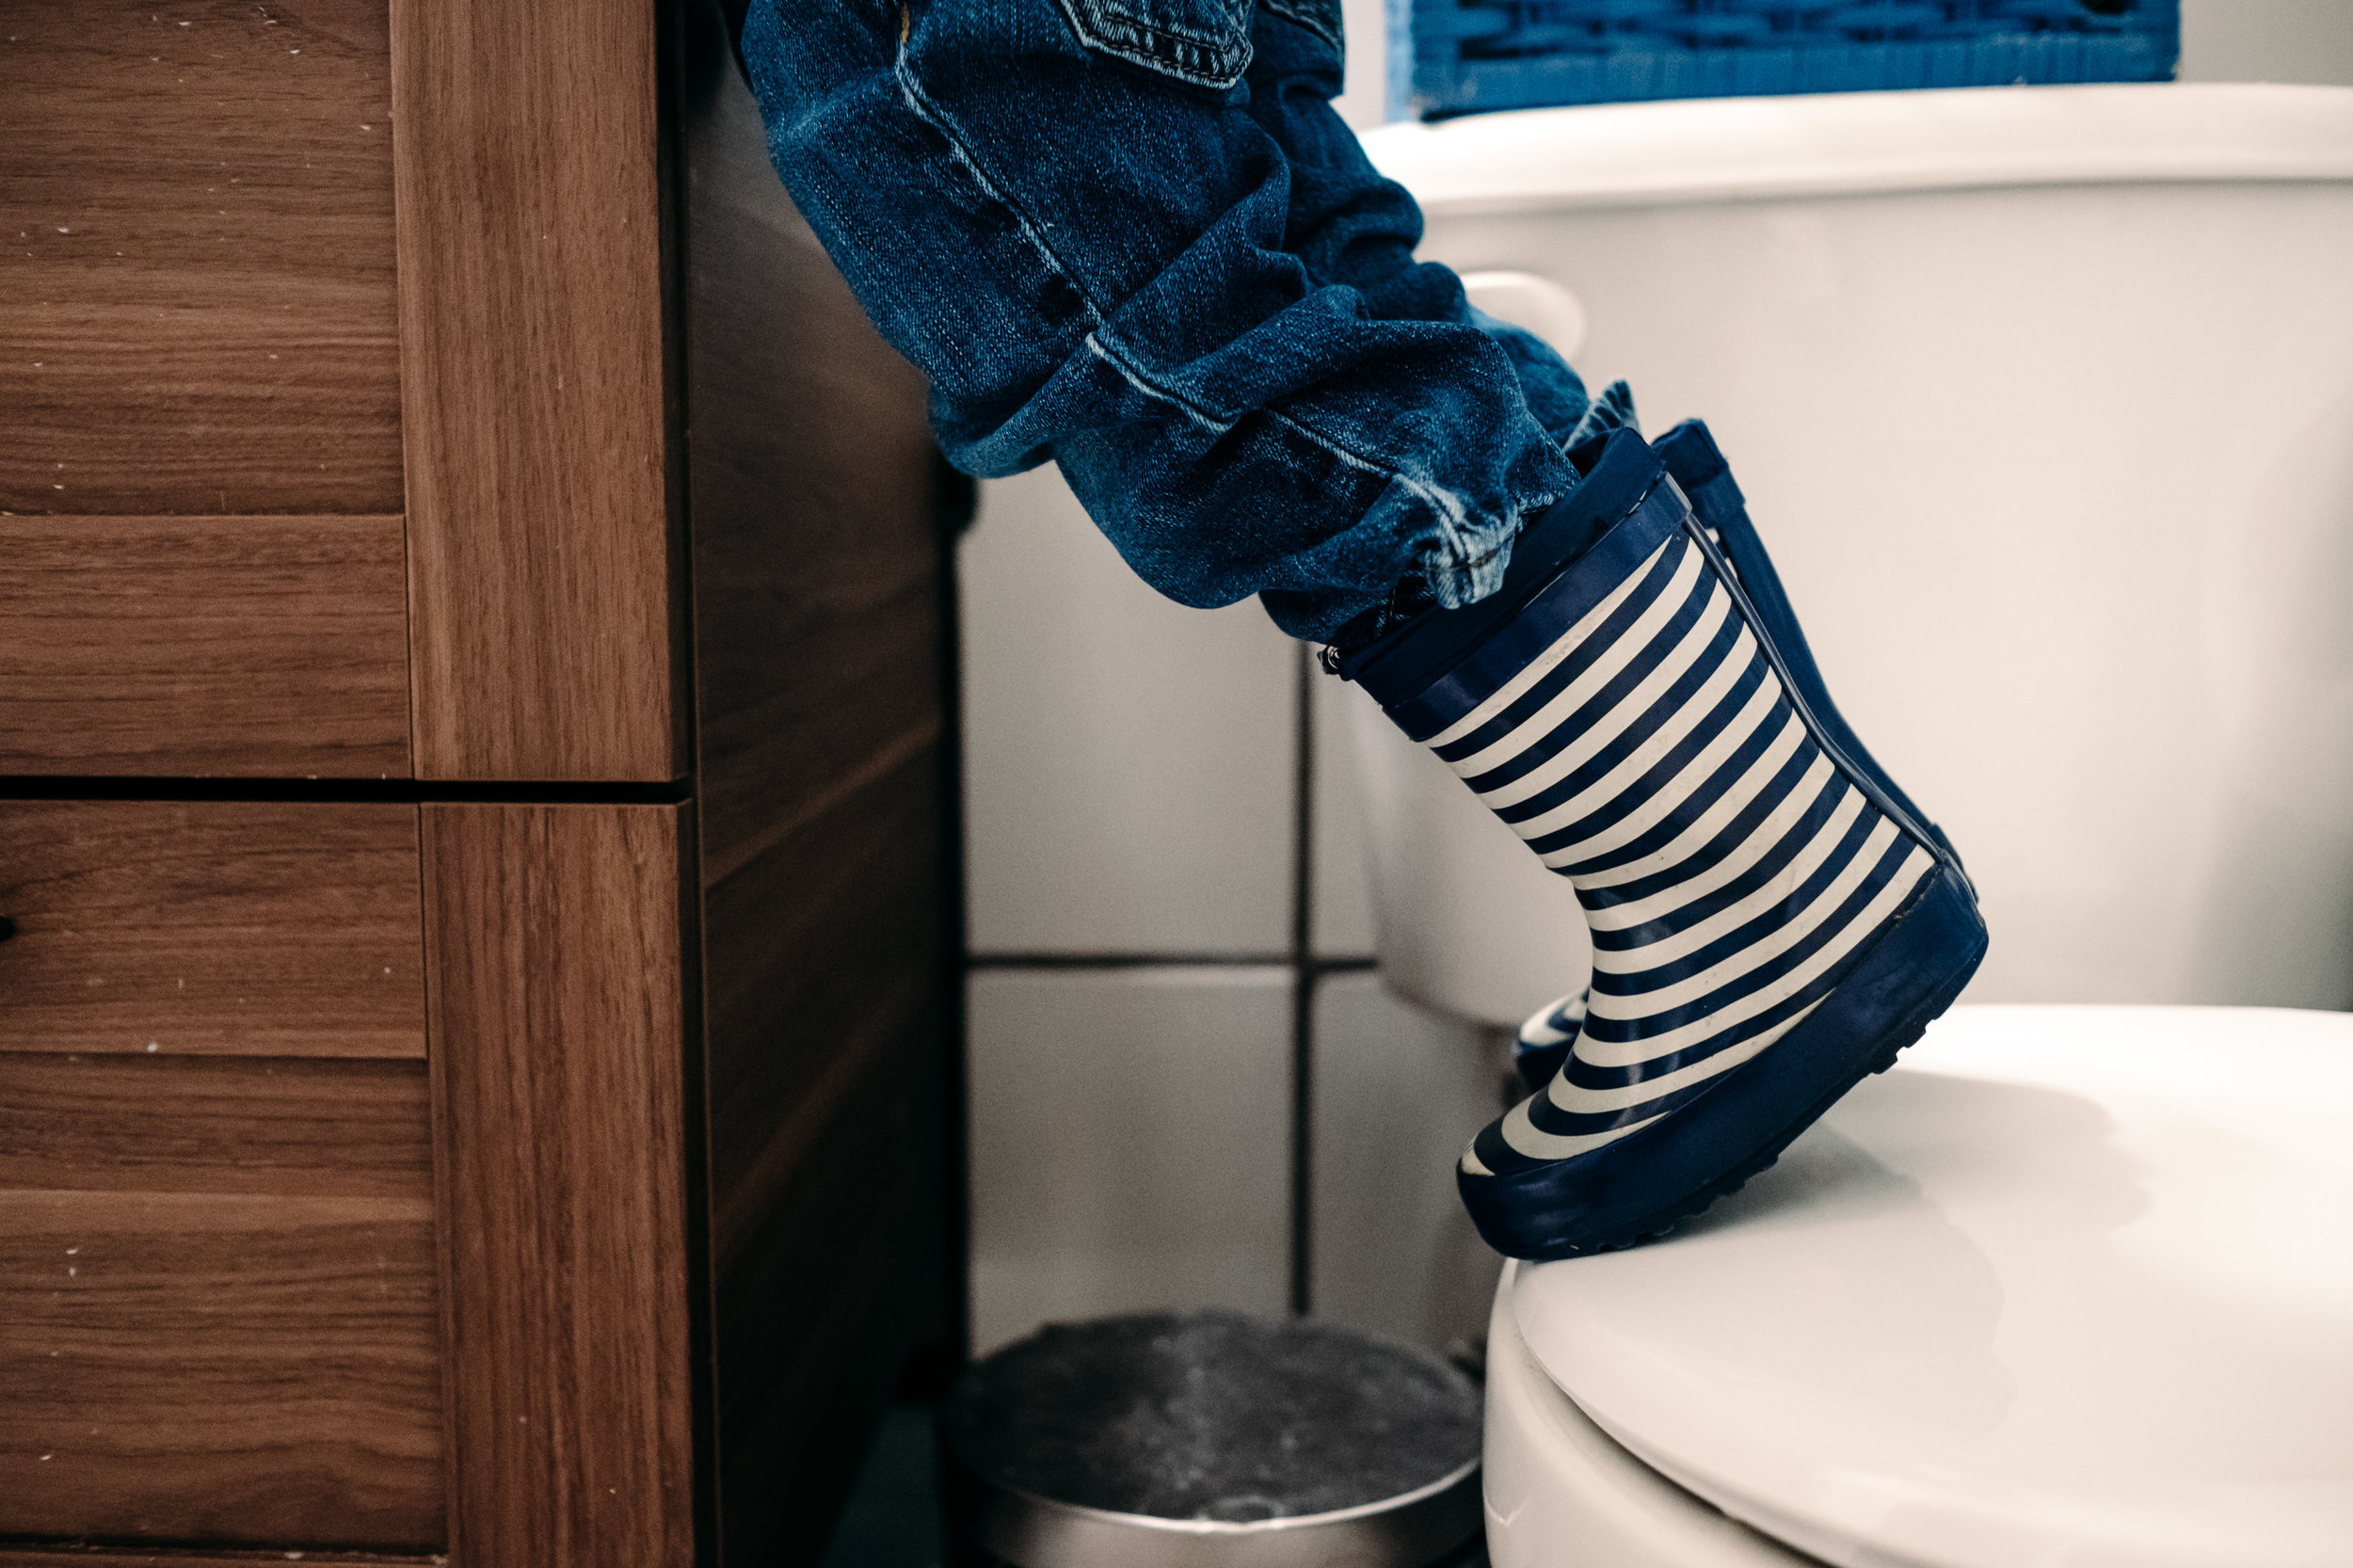 kid-standing-on-toilet-boots-rubber-toddler